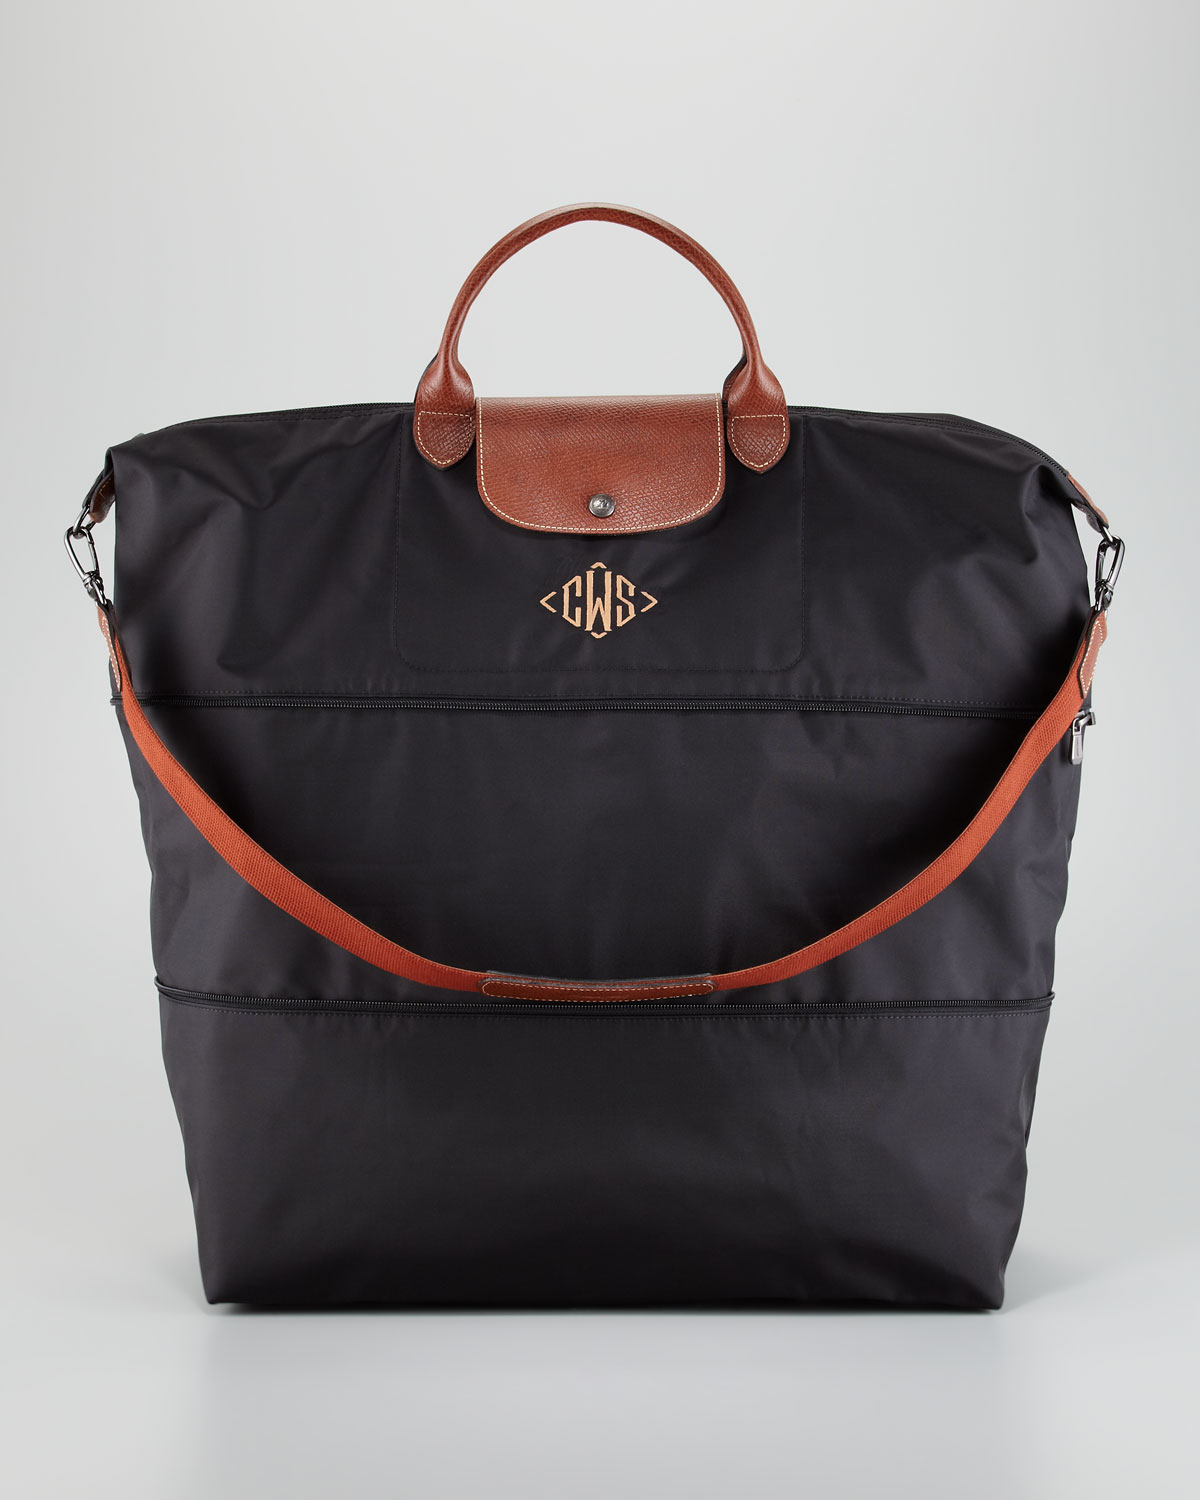 monogrammed suitcases